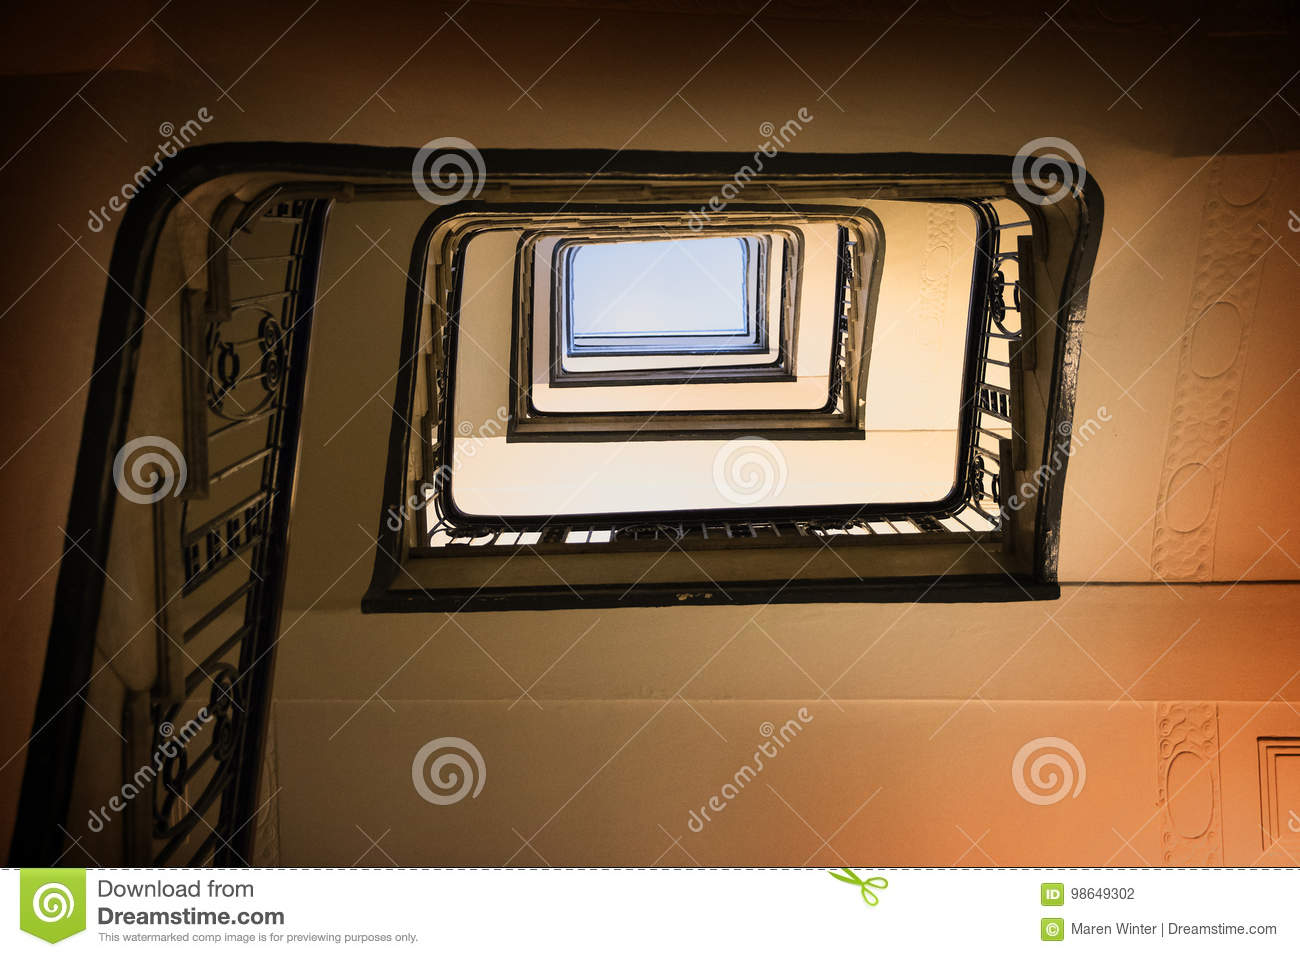 Old square spiral stairway case from below